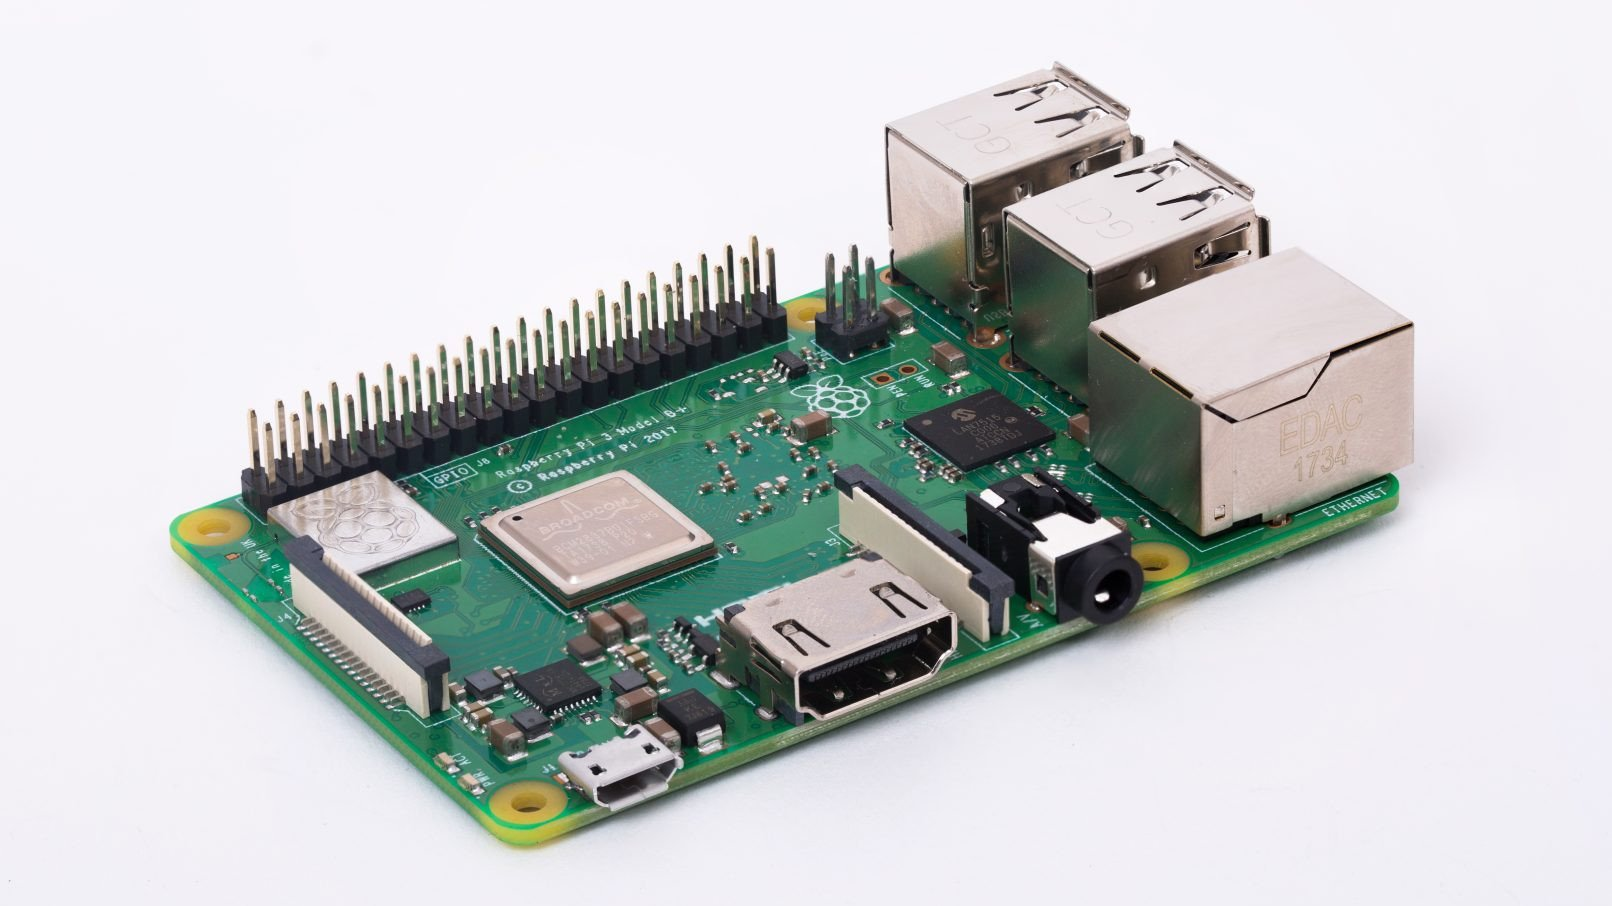 New Raspberry Pi 3 B+: Faster Chipset, Better Network Features, Same Price | All3DP